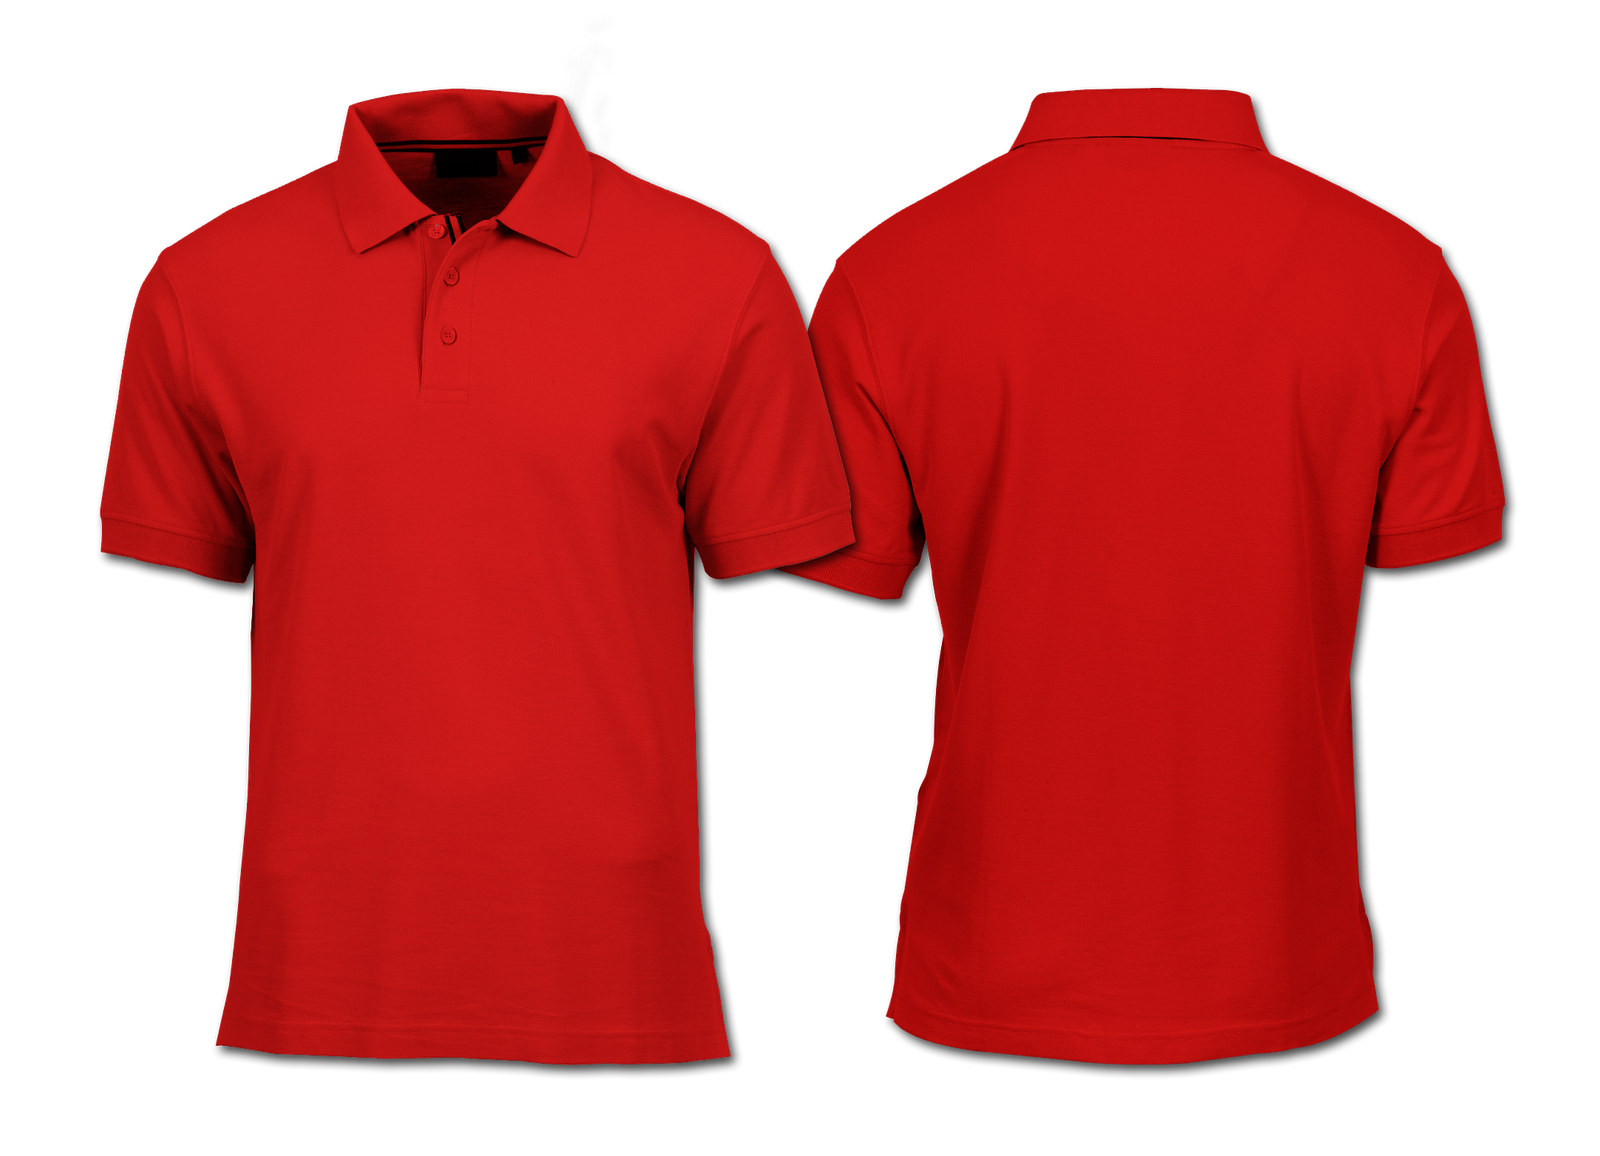 Download Gembel Keren Mock Up Polo Shirt Baju Kaos Kaos Kaos Polo